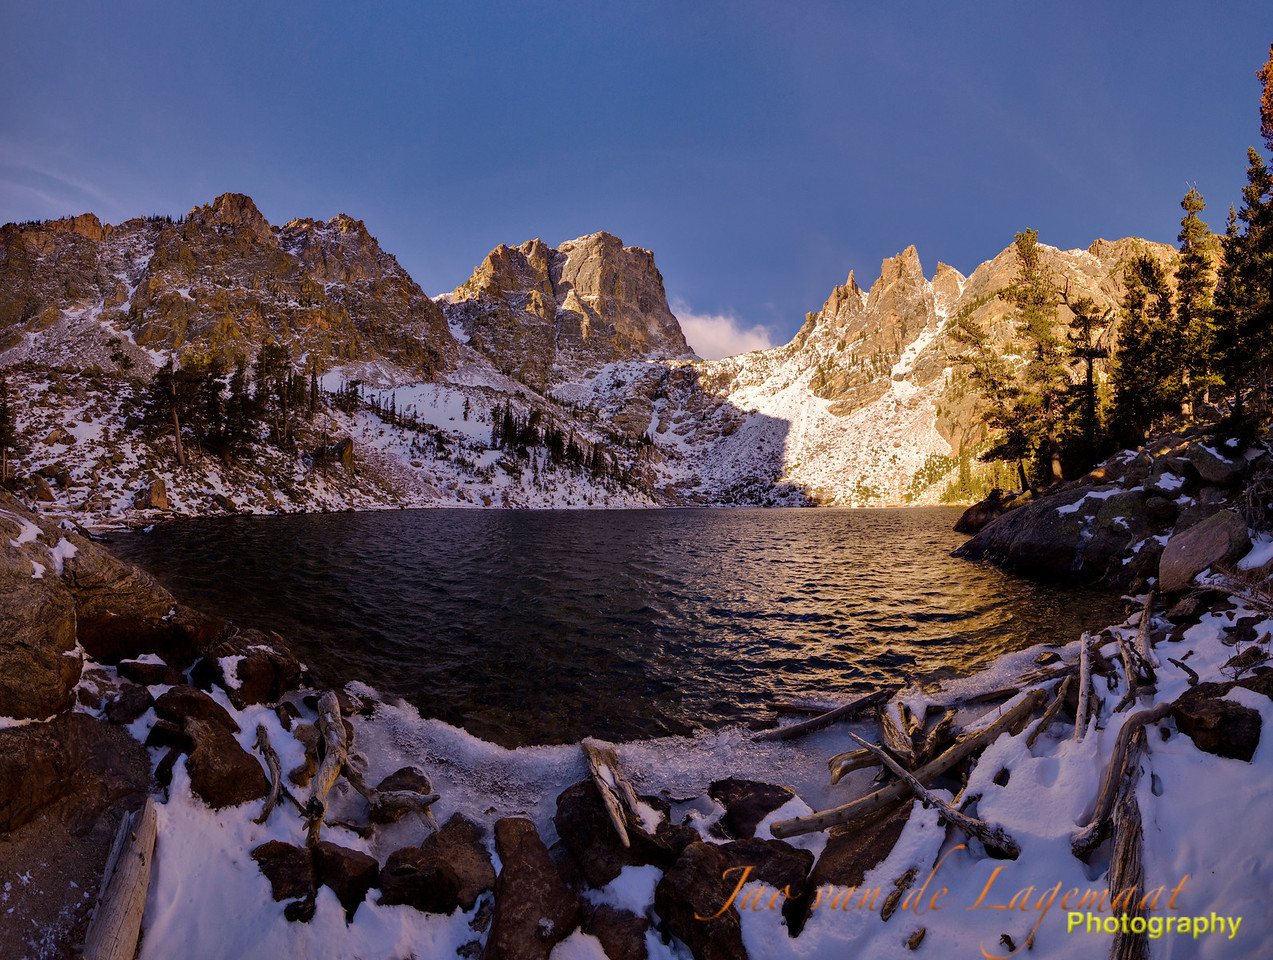 180 degrees cylindrical panorama of Emerald lake and Hallett peak at dawn in Rocky Mountain National Park, Colorado